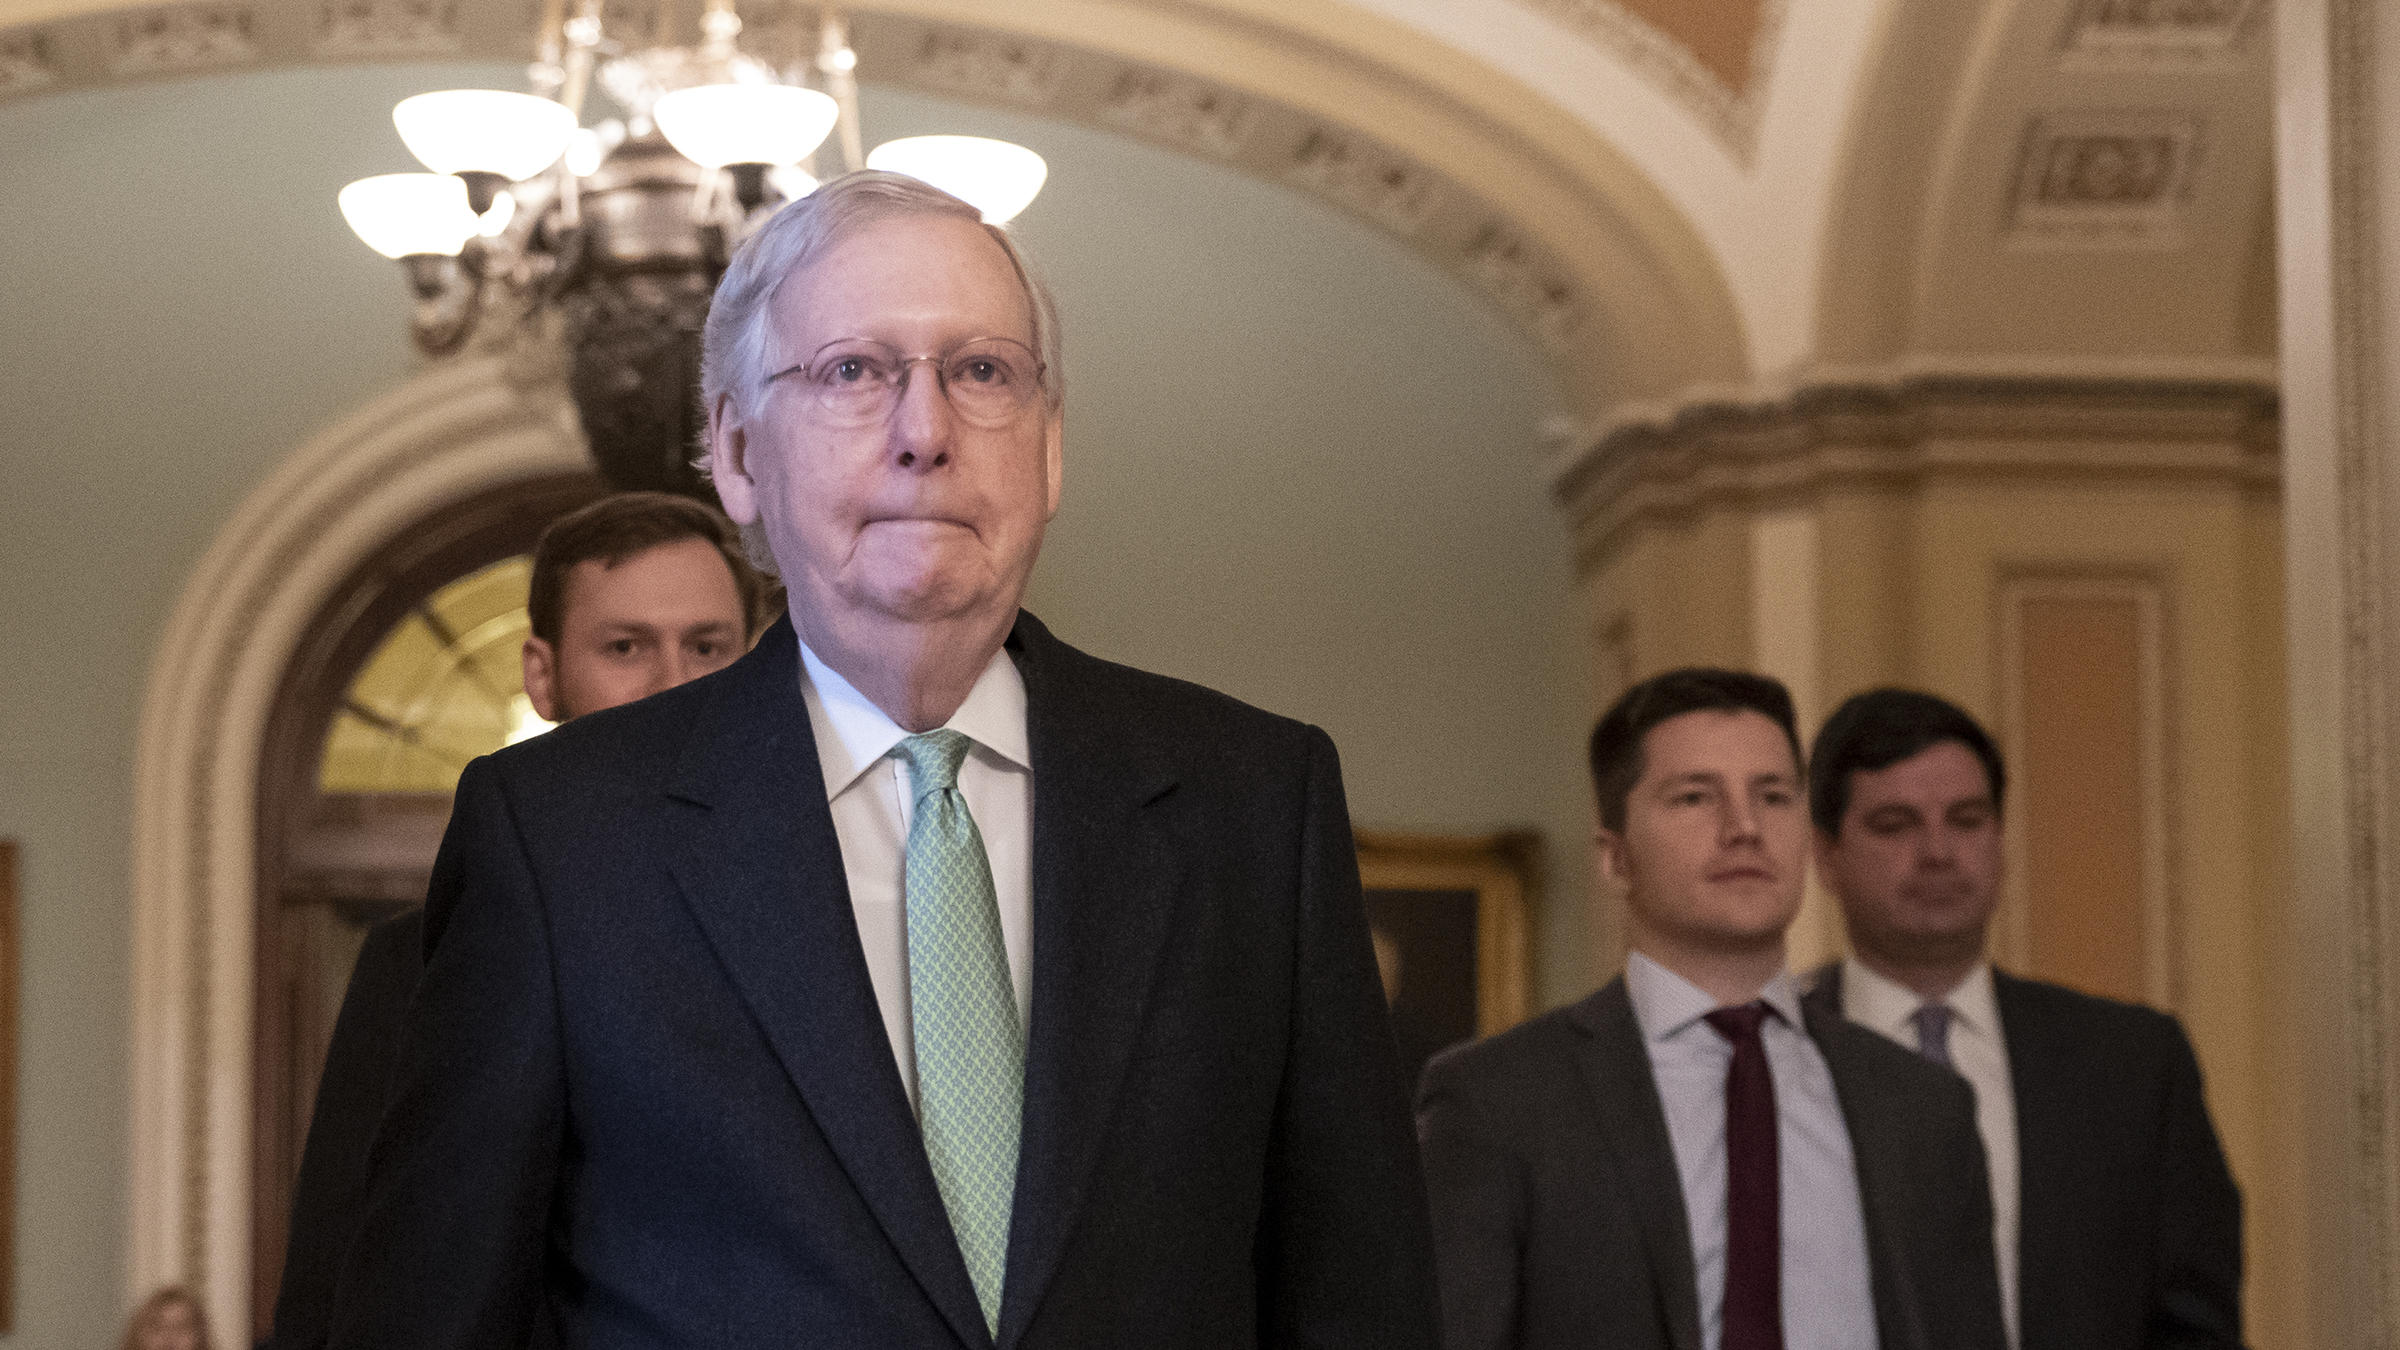 McConnell: 'I'm Not Impartial' About Impeachment